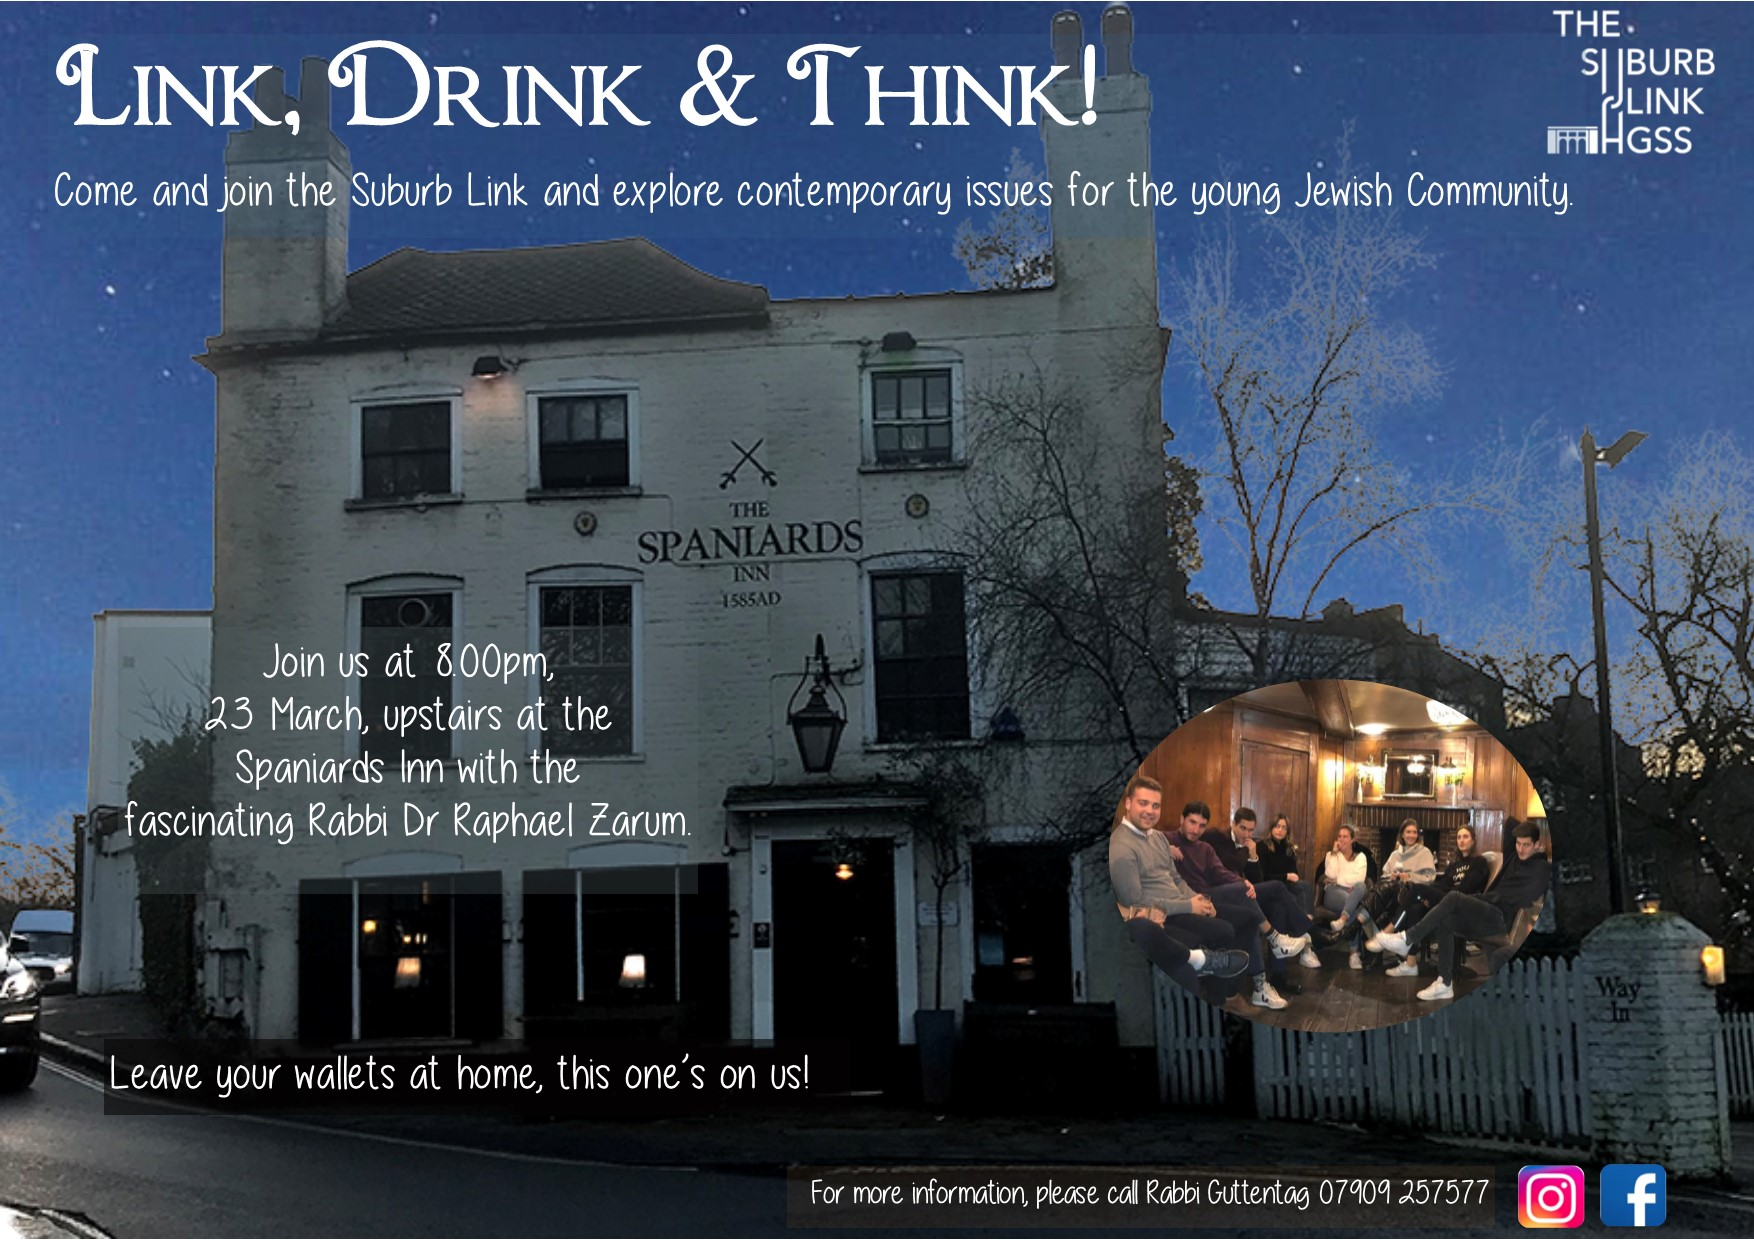 Link, Drink & Think - Postponed @ The Spaniards Inn, NW3 7JJ